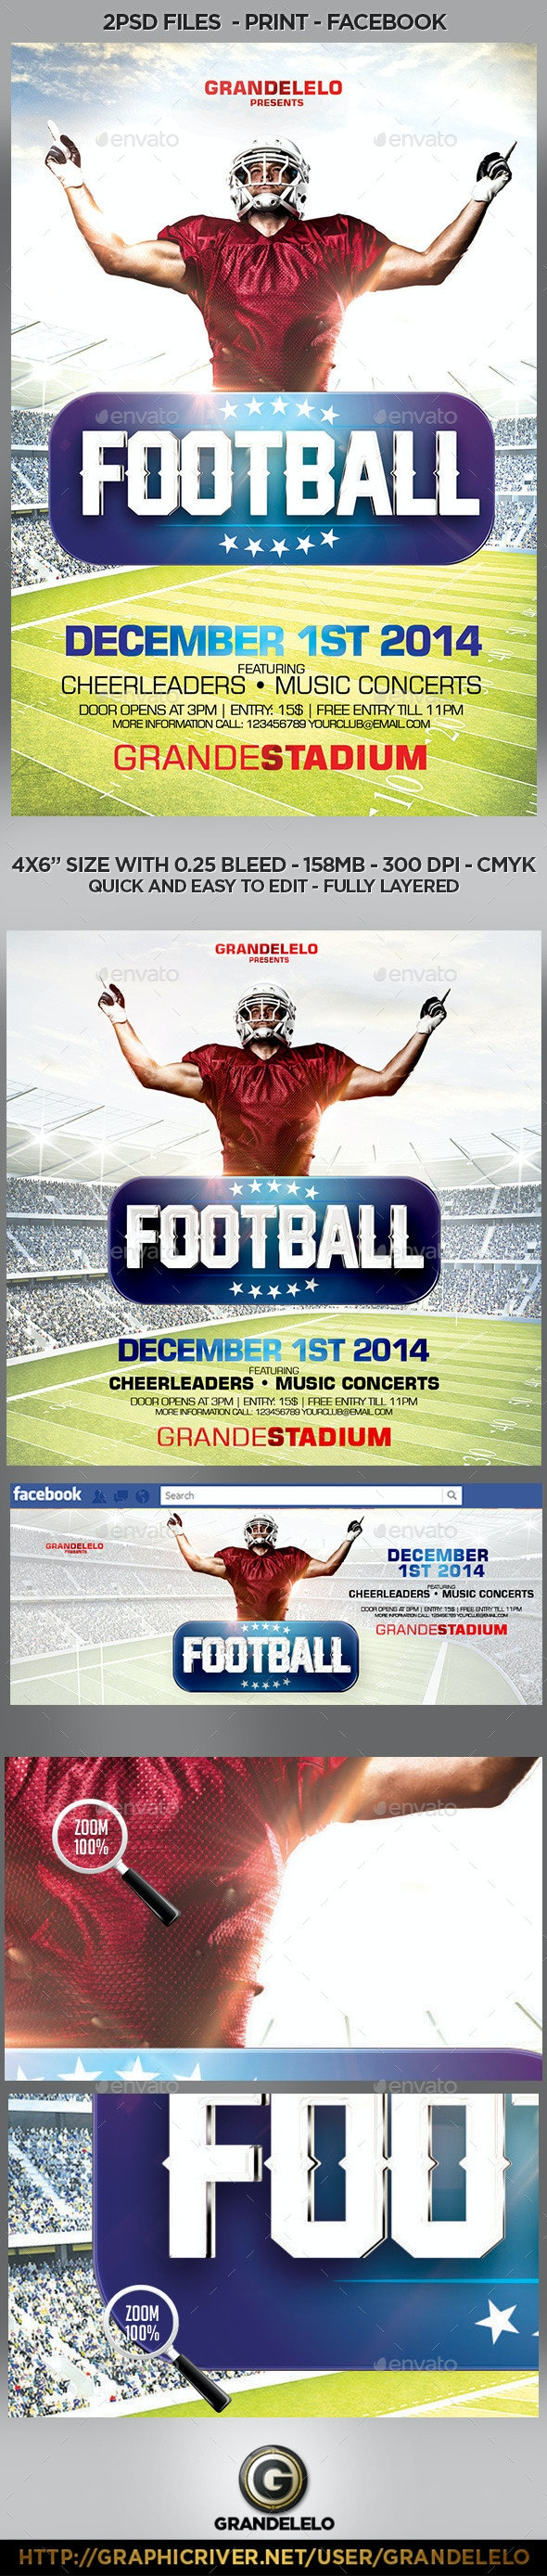 Football Flyer Template with Facebook and Instagram Cover - Sports Events